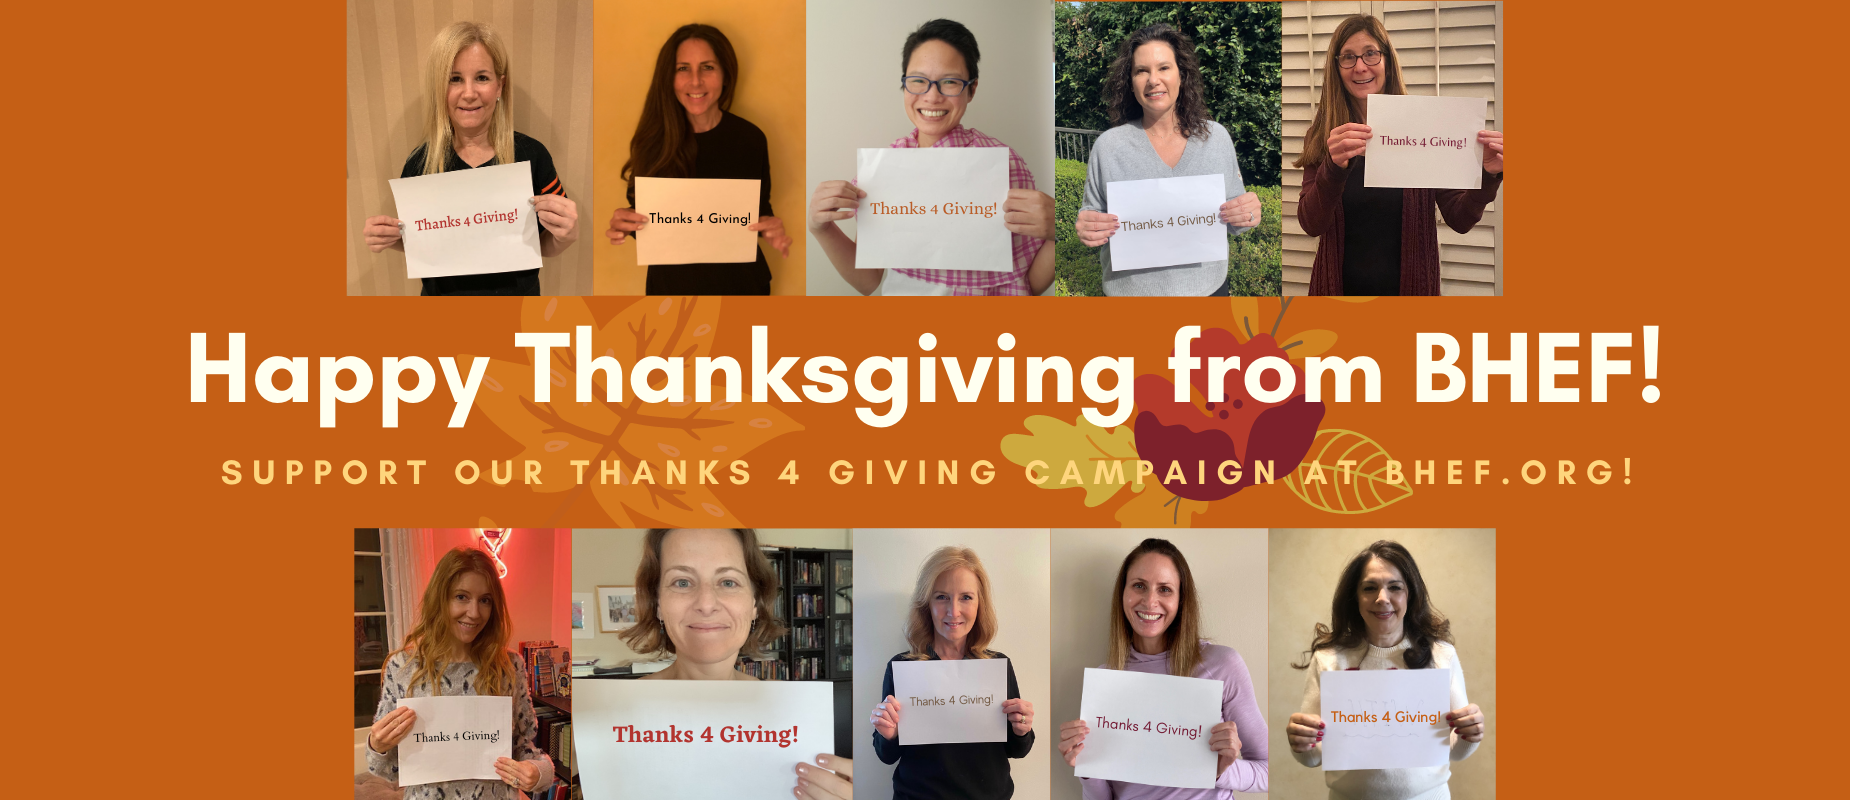 Happy Thanksgiving from BHEF!